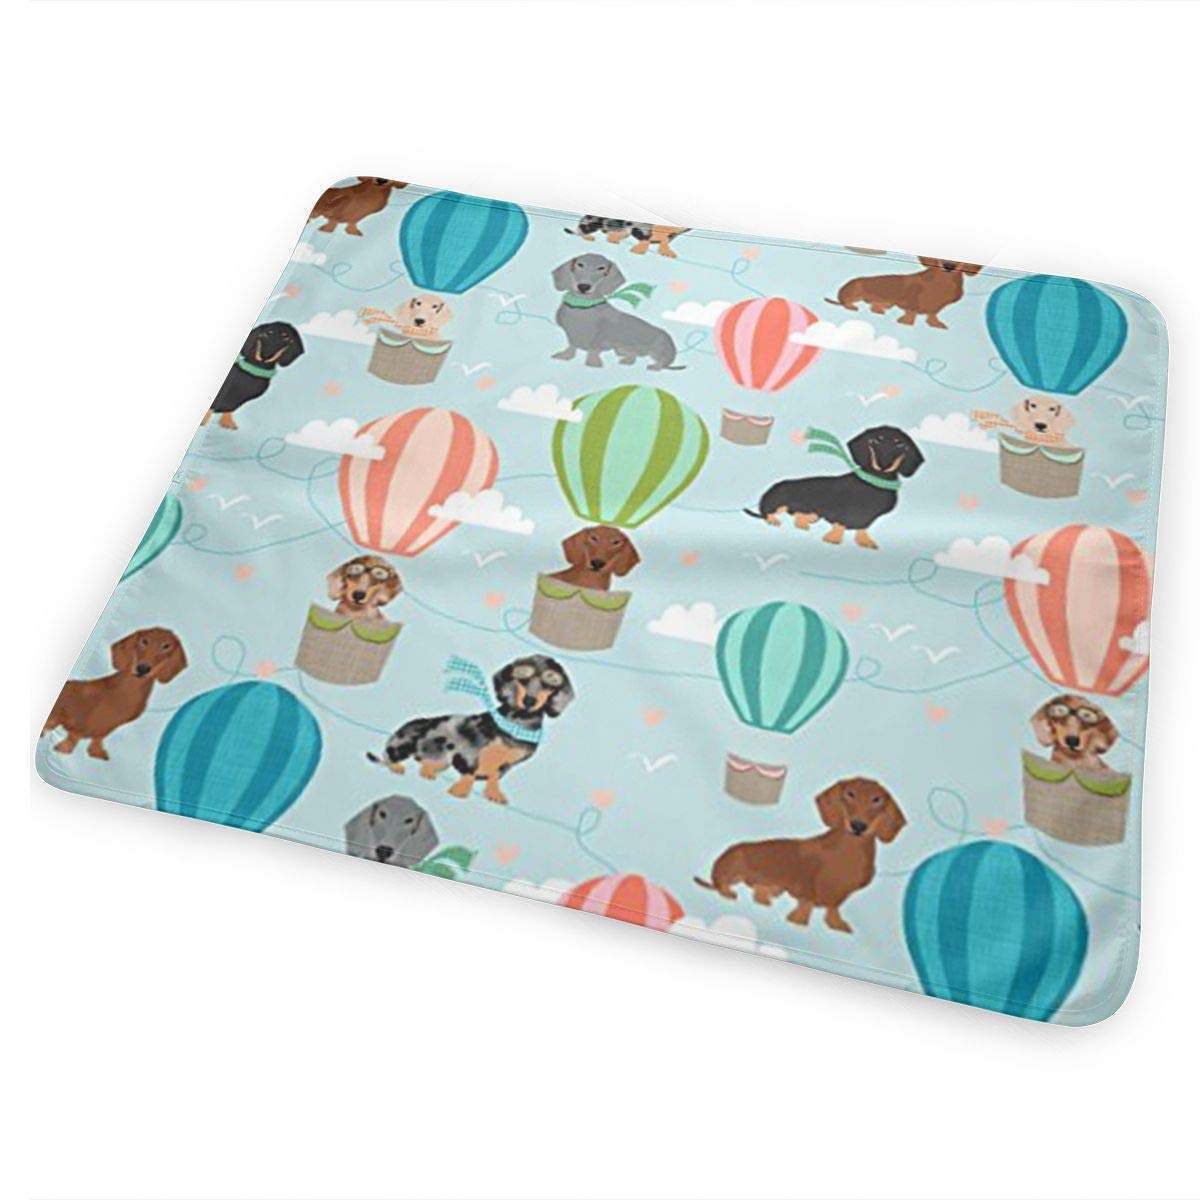 Unisex Kotdeqay Dachshund Hot Air Balloon Changing Pad /¨C Reusable Large Changing Pad Baby Changing Mat with Reinforced Seams